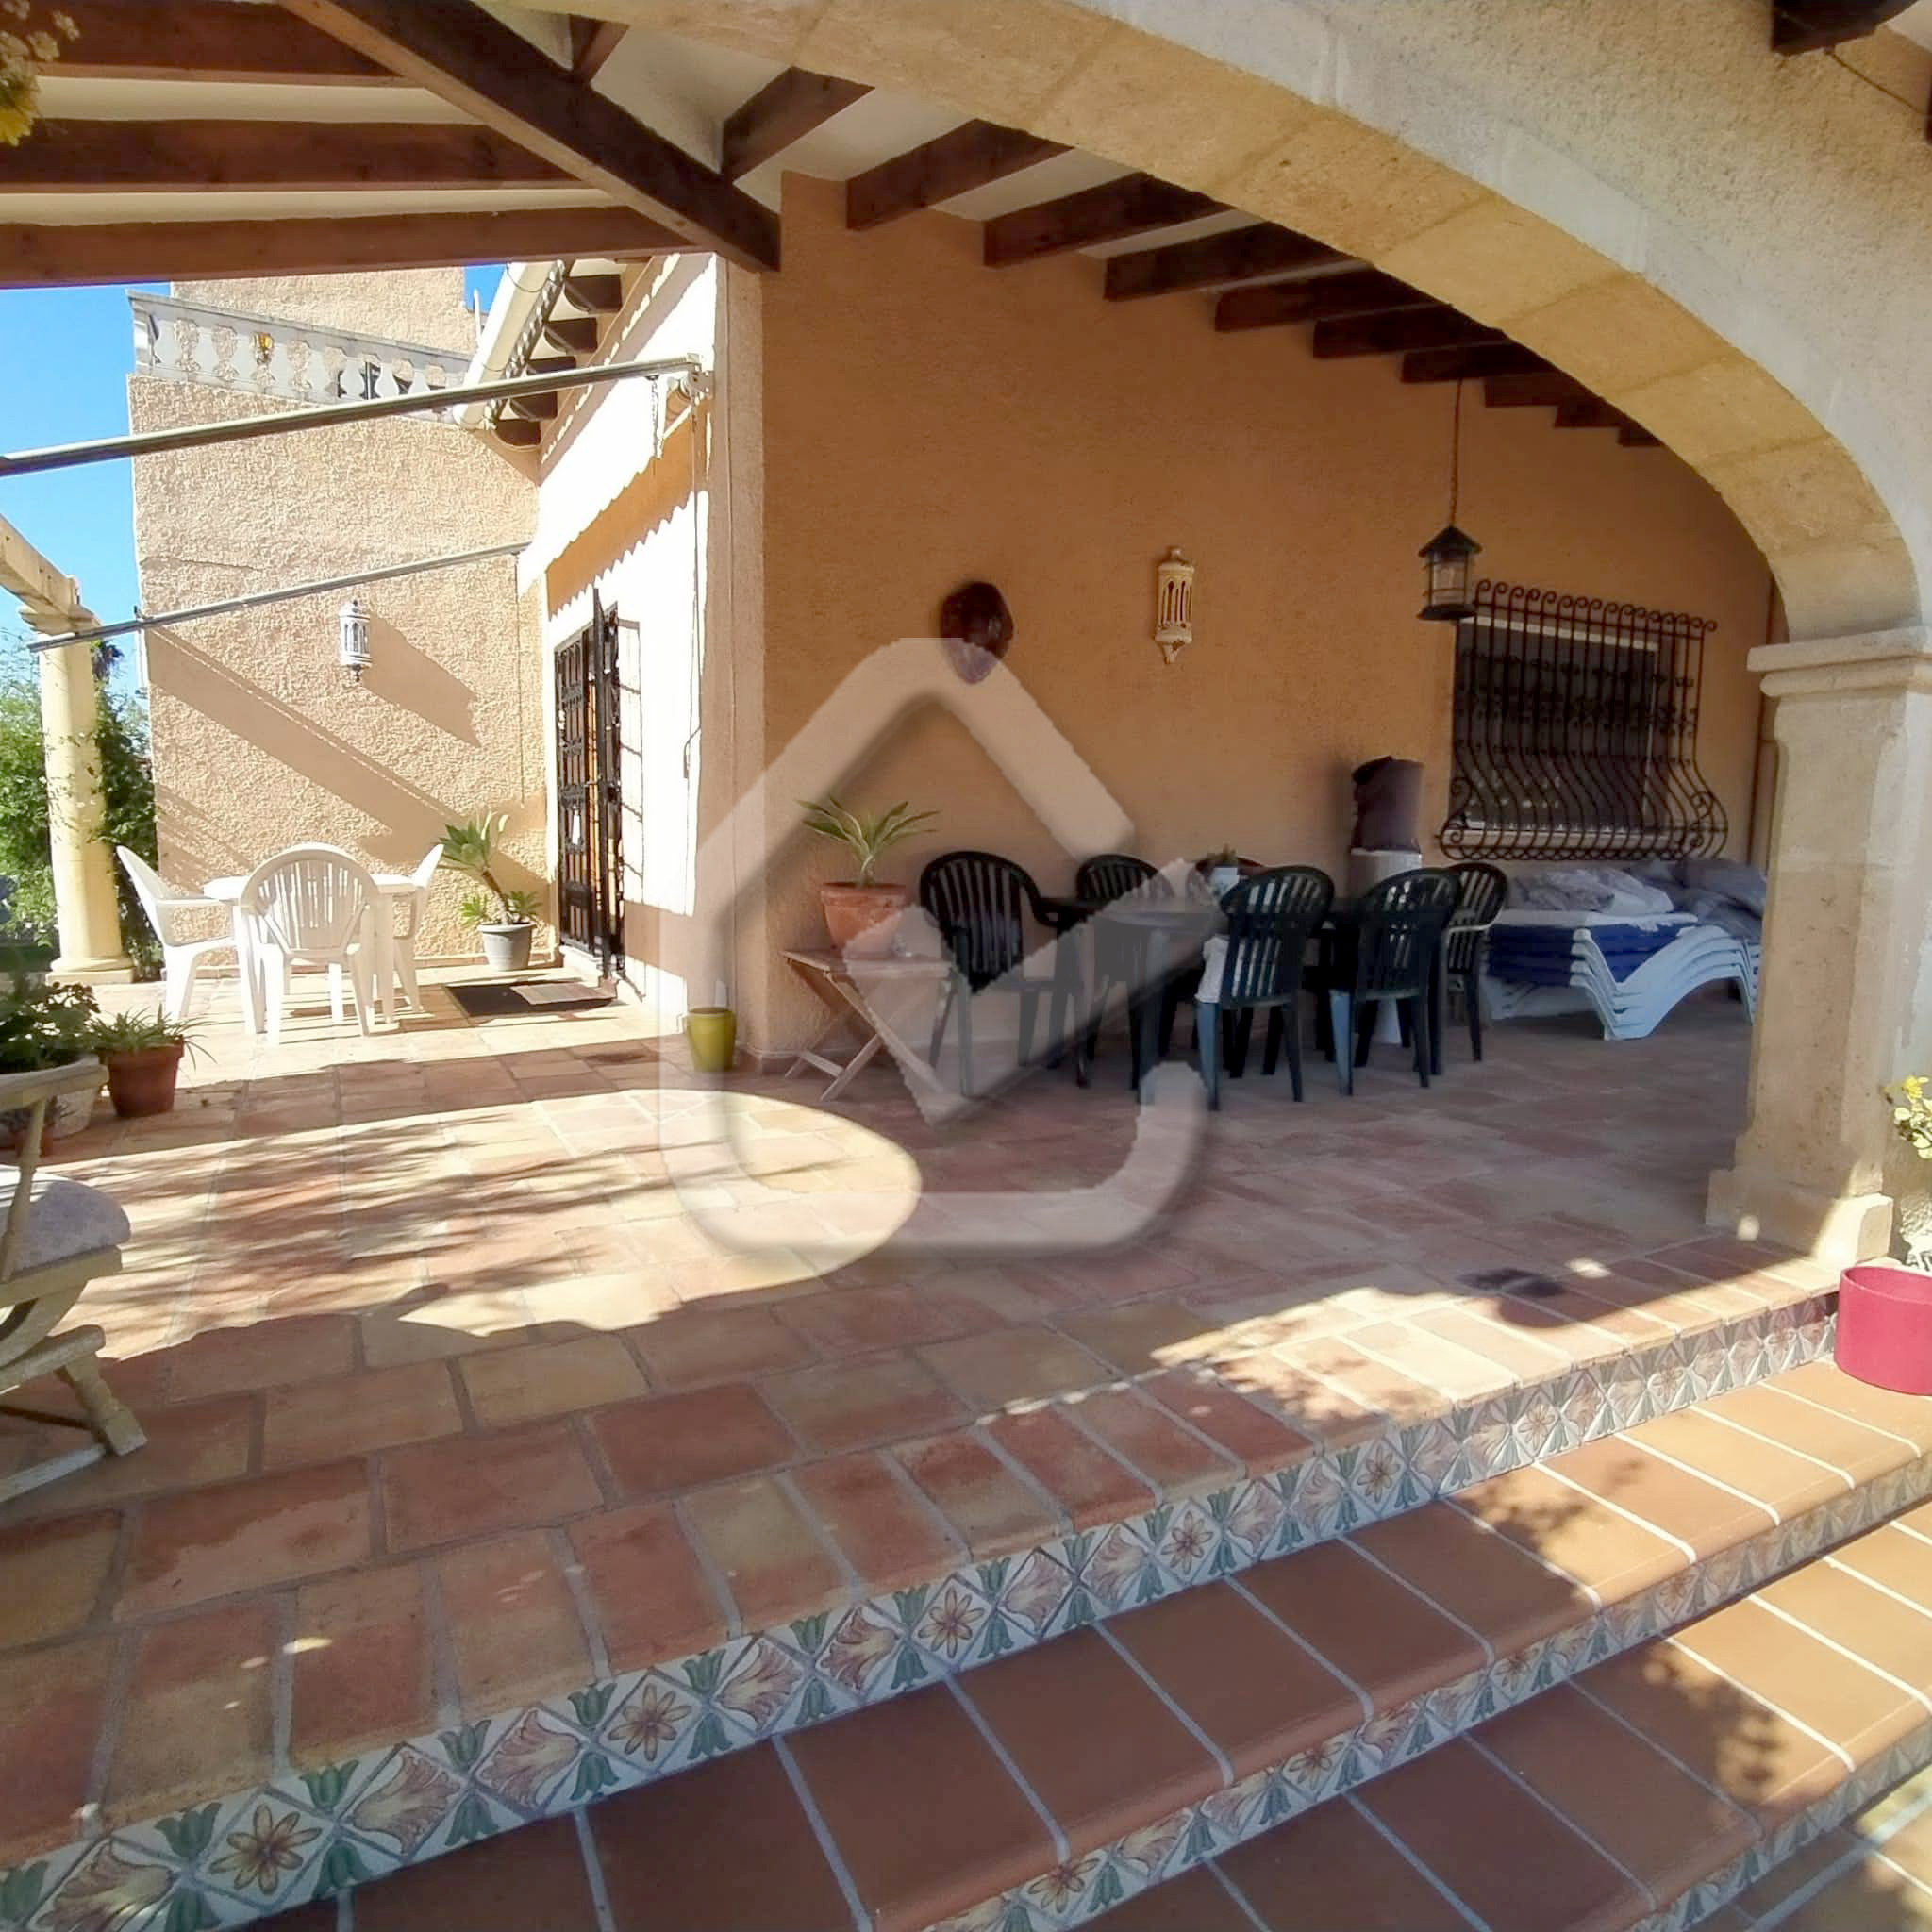 Photo  number 36: Villa in Sale in Denia, Area Marinas, Sector Bassetes-bovetes. Ref. 5-36-14957